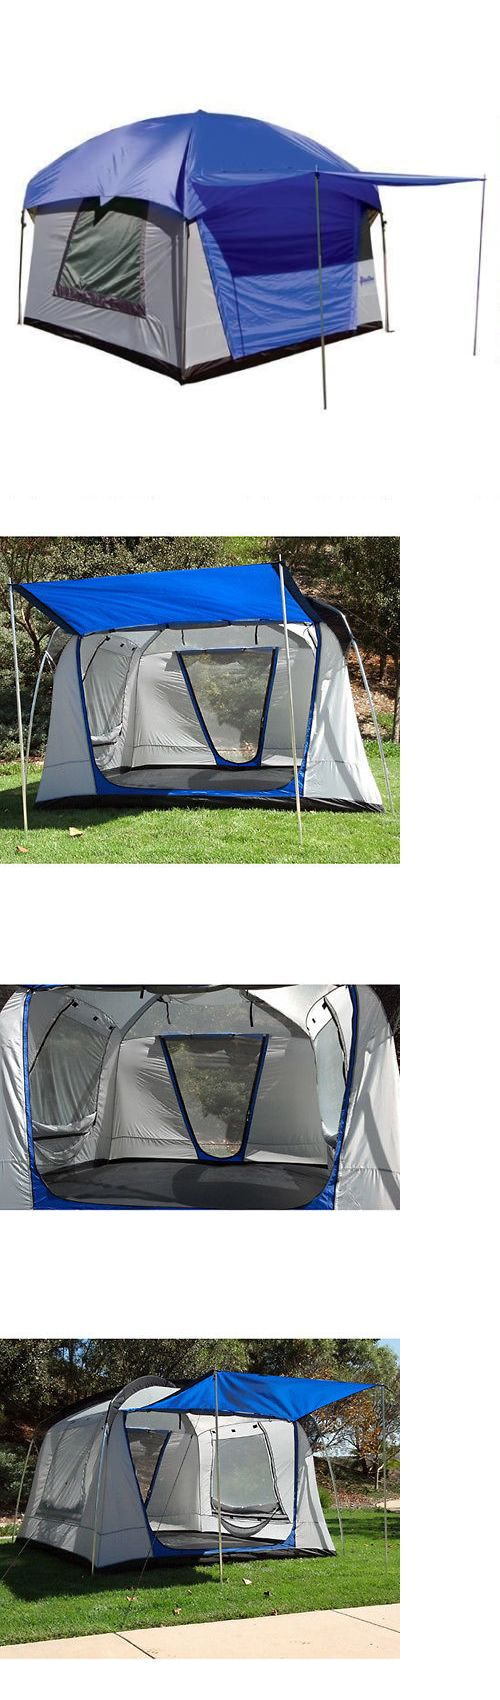 Other Camping Sleeping Gear 16040: Pahaque Pamo Valley Xd 6 Person Tent 10 X10 X7 Blue Pv101 -> BUY IT NOW ONLY: $423.54 on eBay!